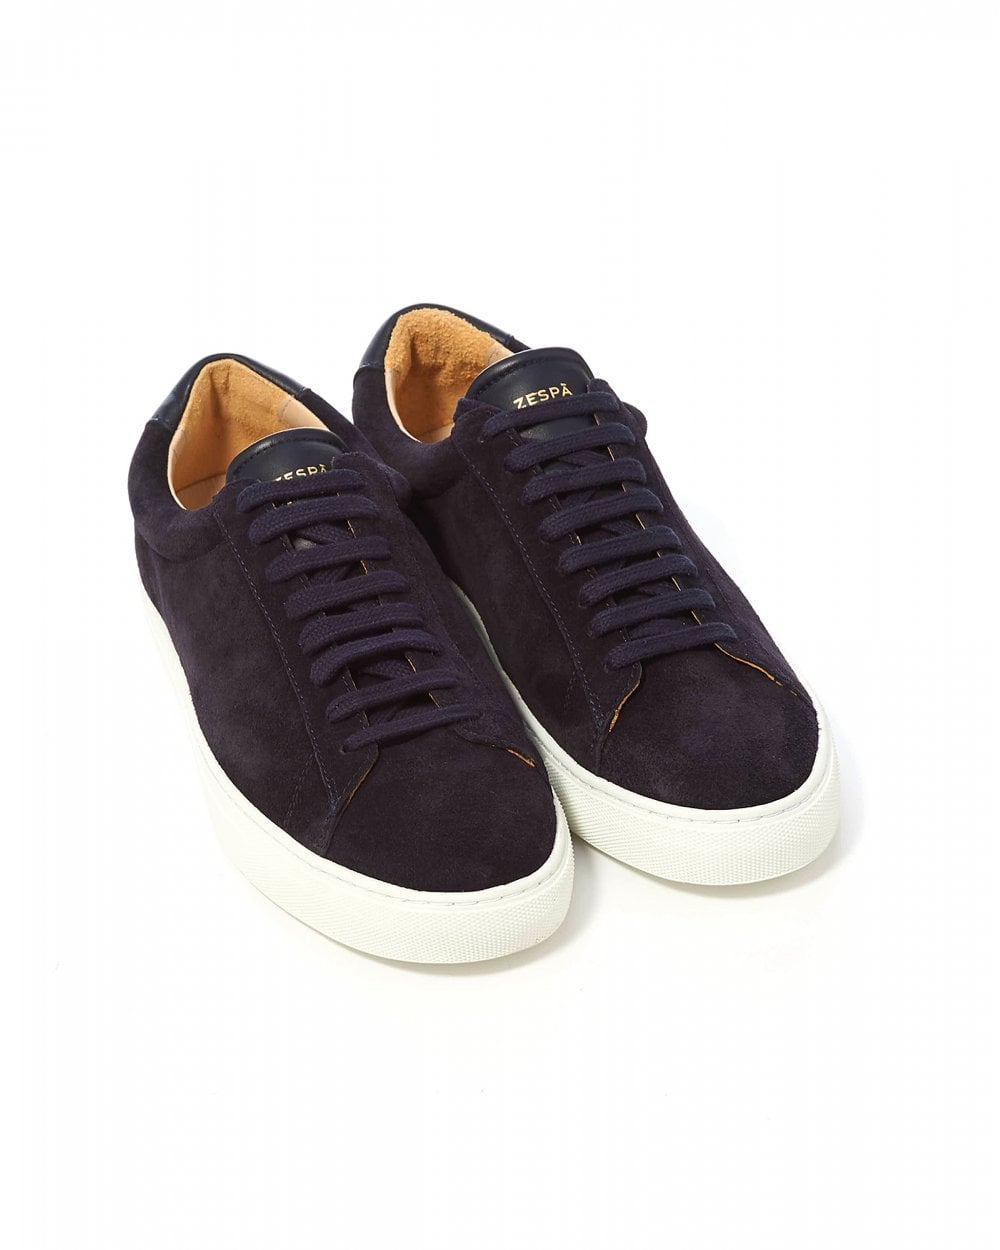 Zespa Mens High Sole Suede Trainers